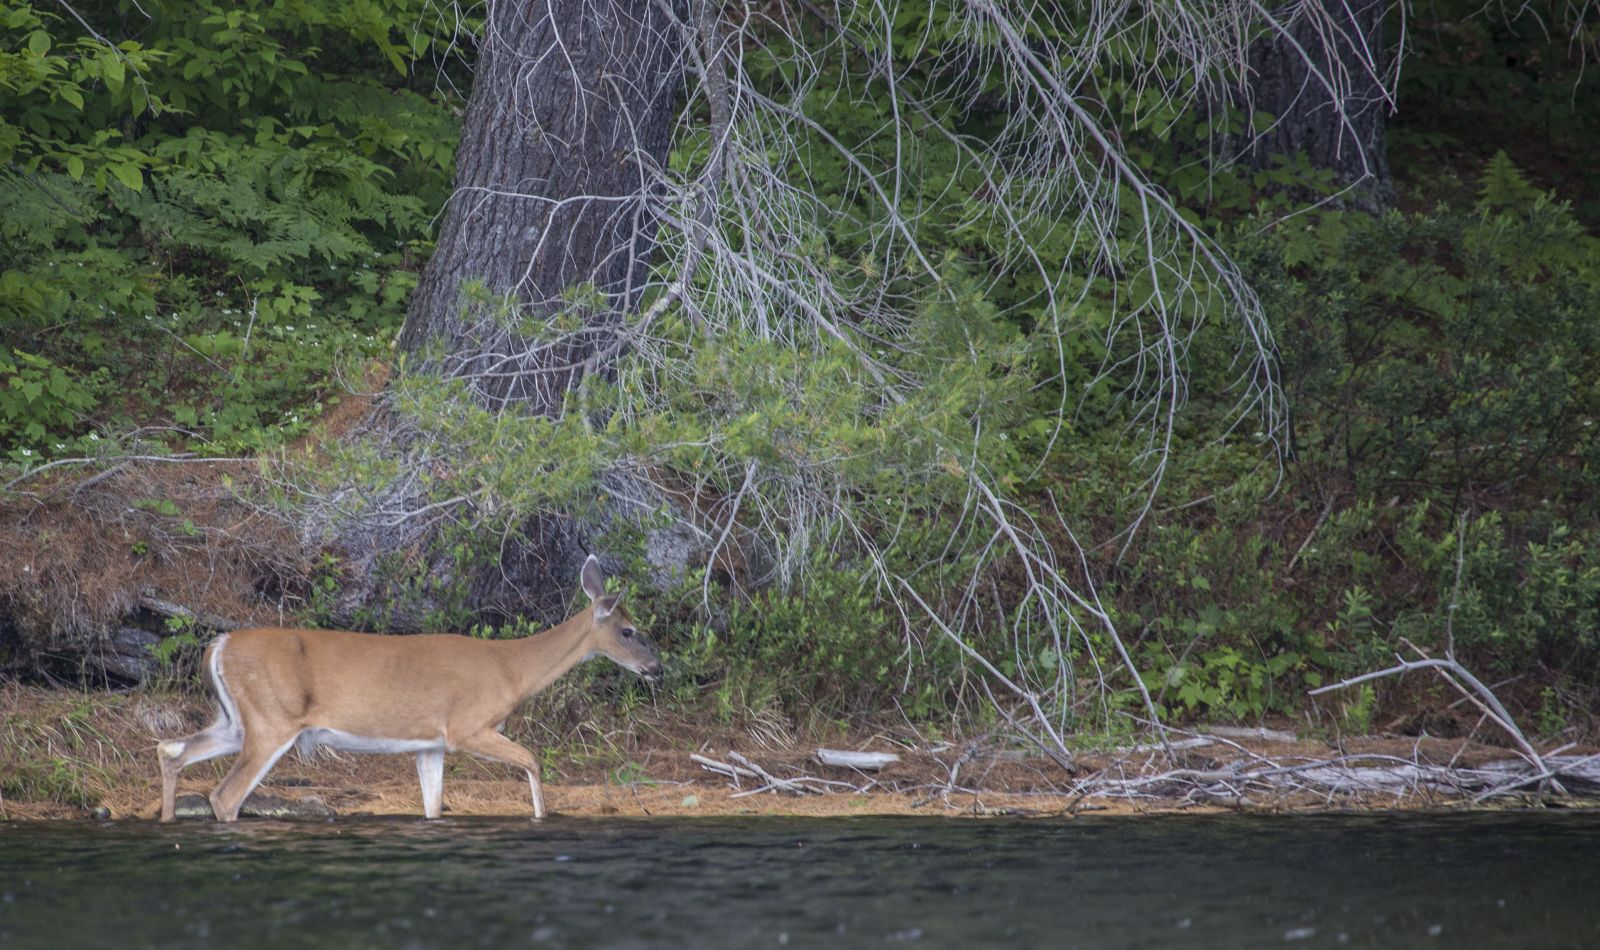 You never know what you will see on a paddling trip!